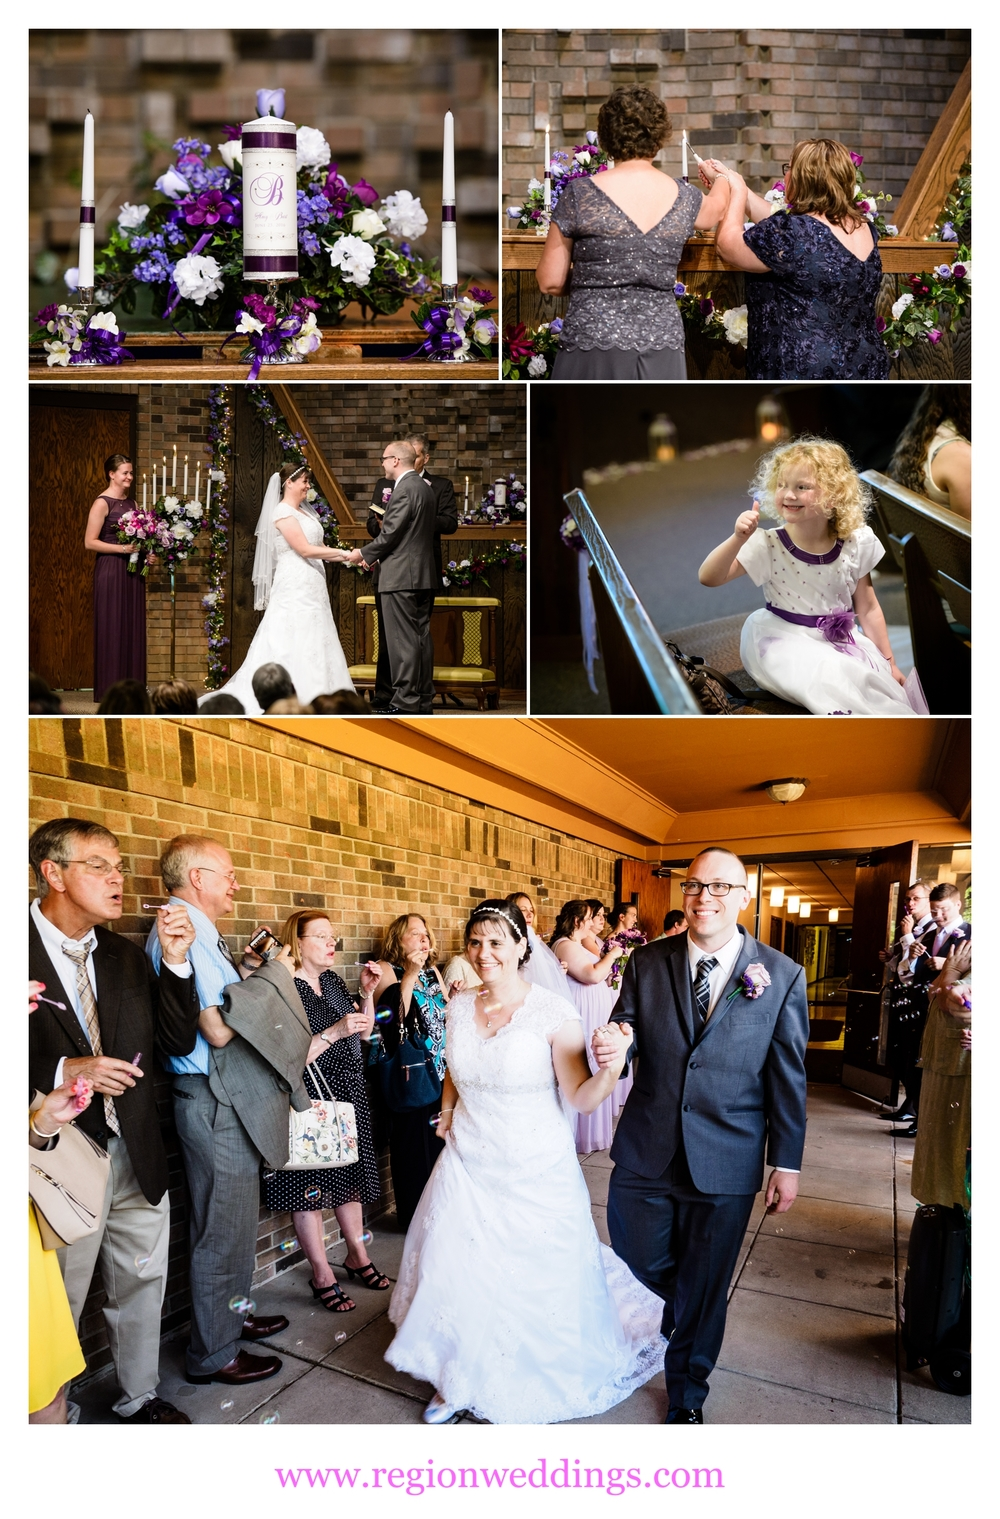 Wedding ceremony at First Christian Church in Crown Point, IN.